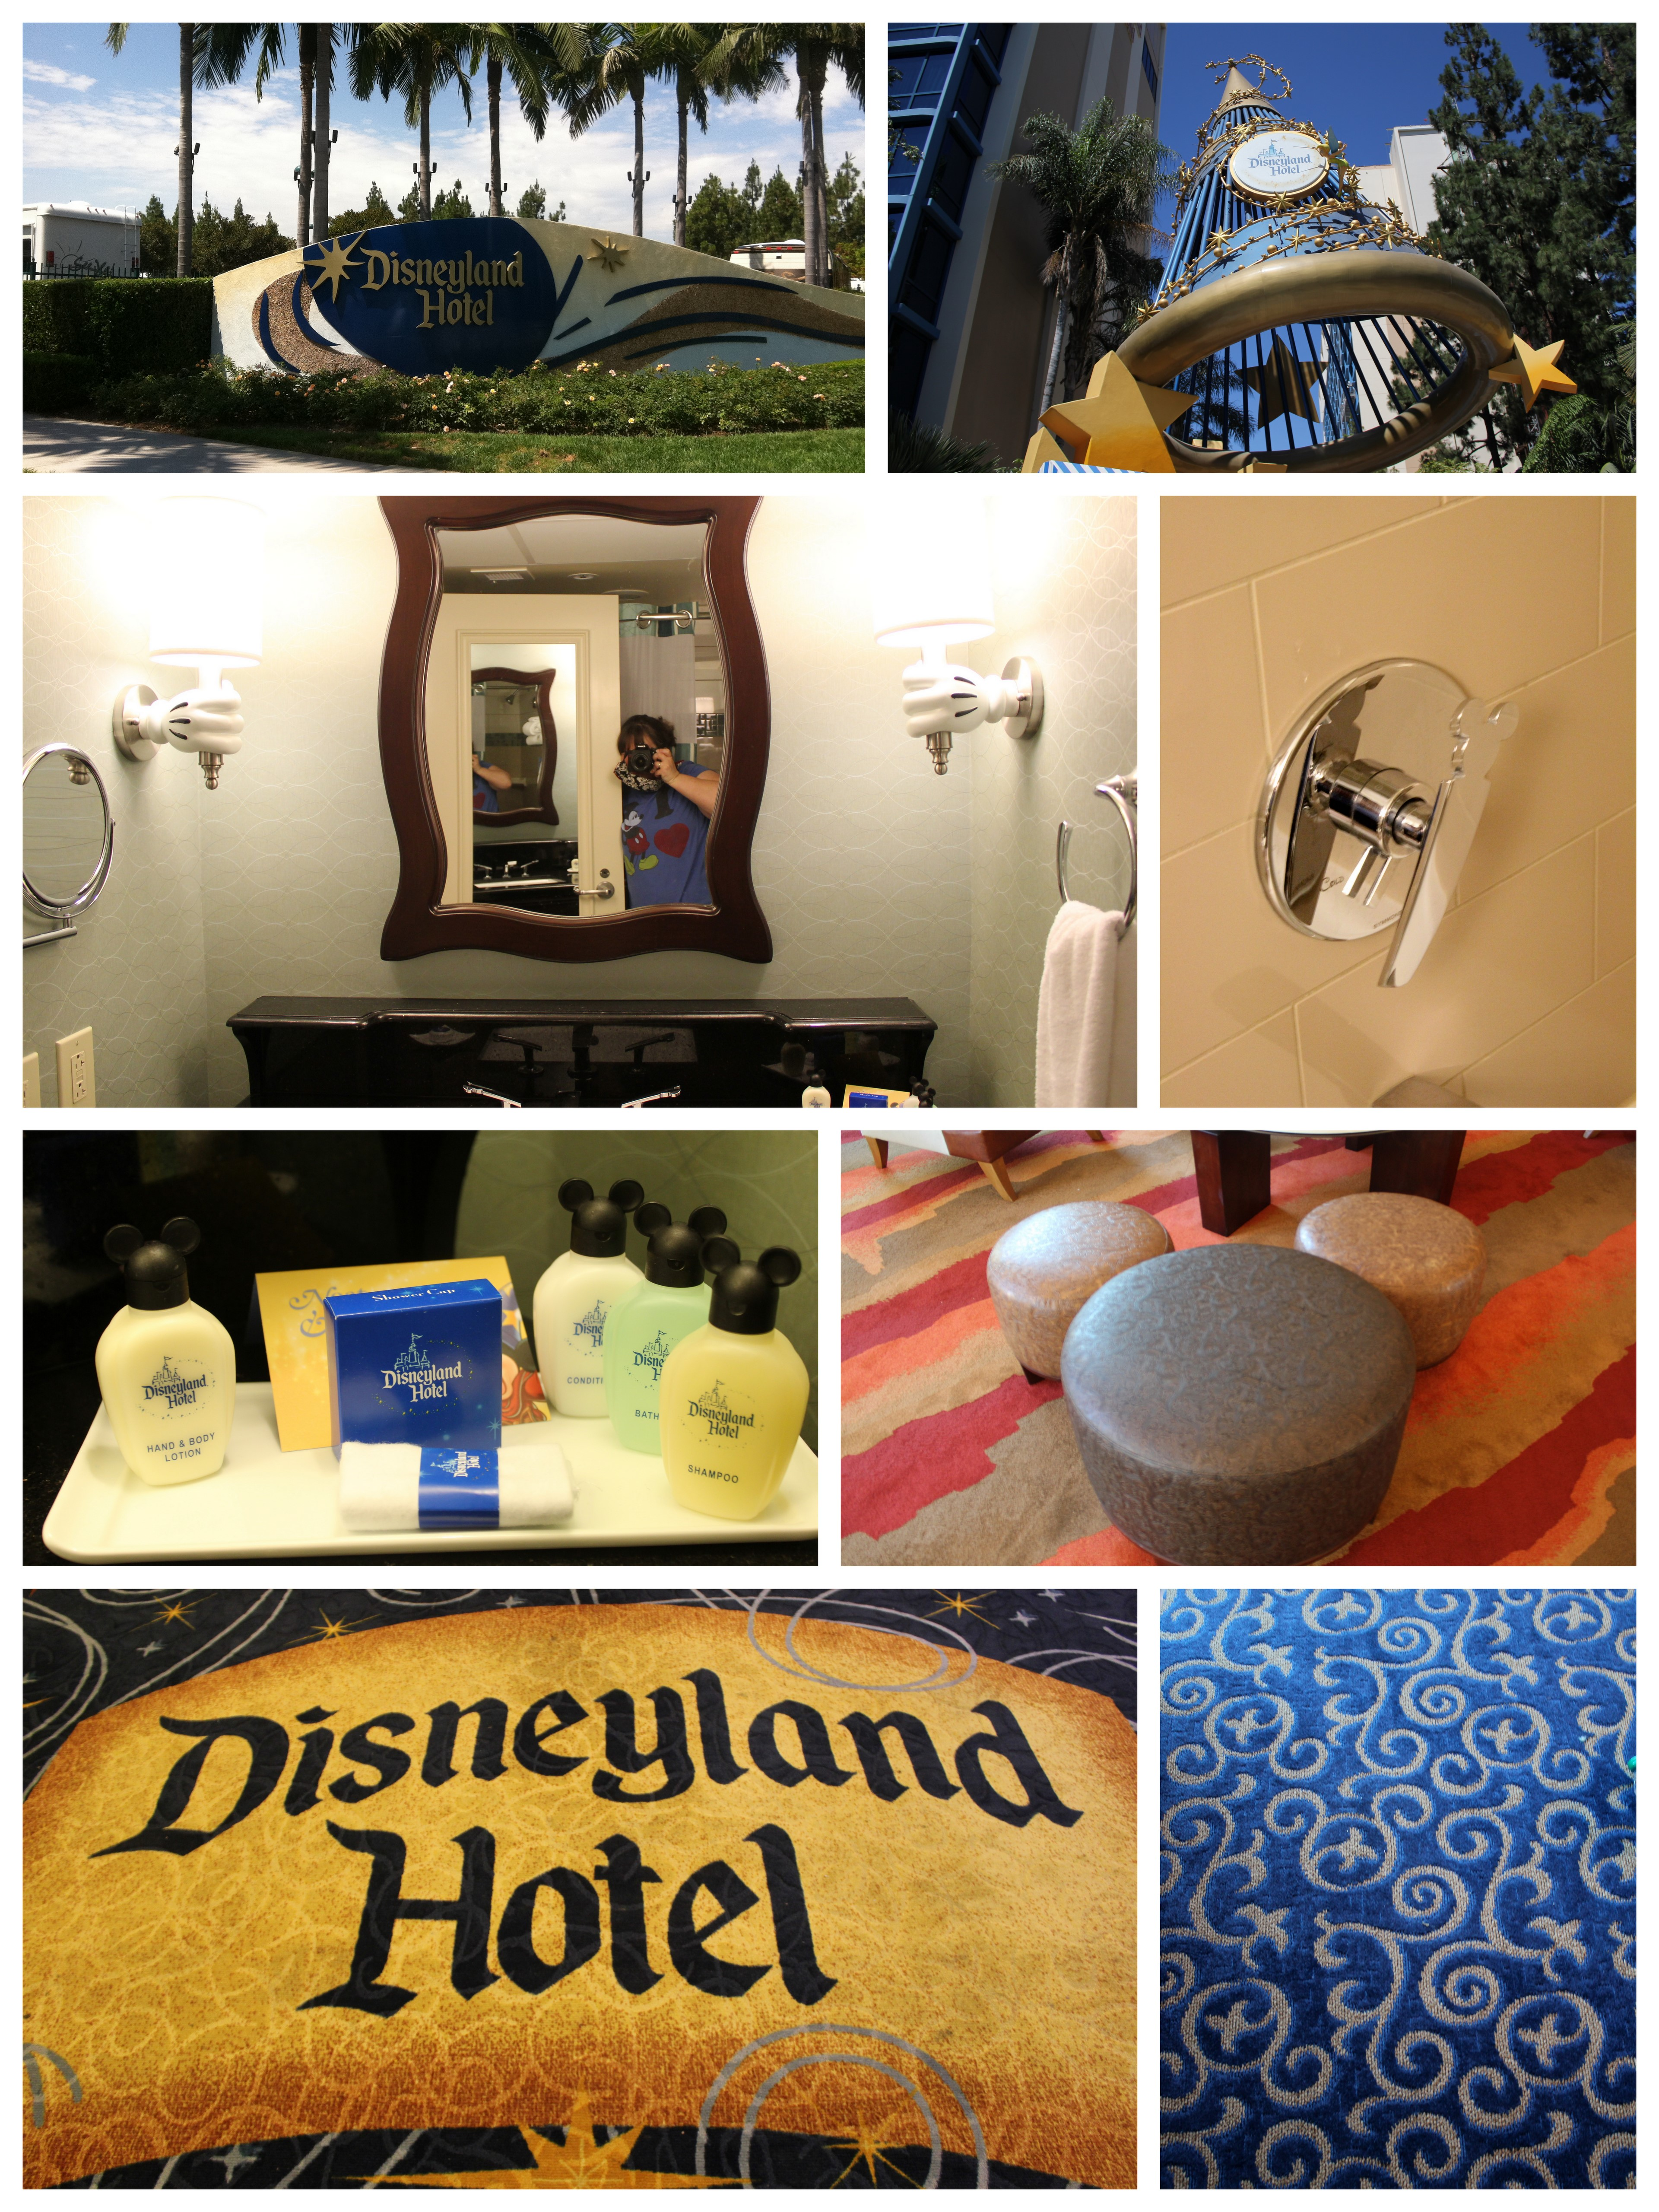 anaheim hotels with kitchen near disneyland floor tiles home depot a dream is wish your heart makesdisneyland hotel review